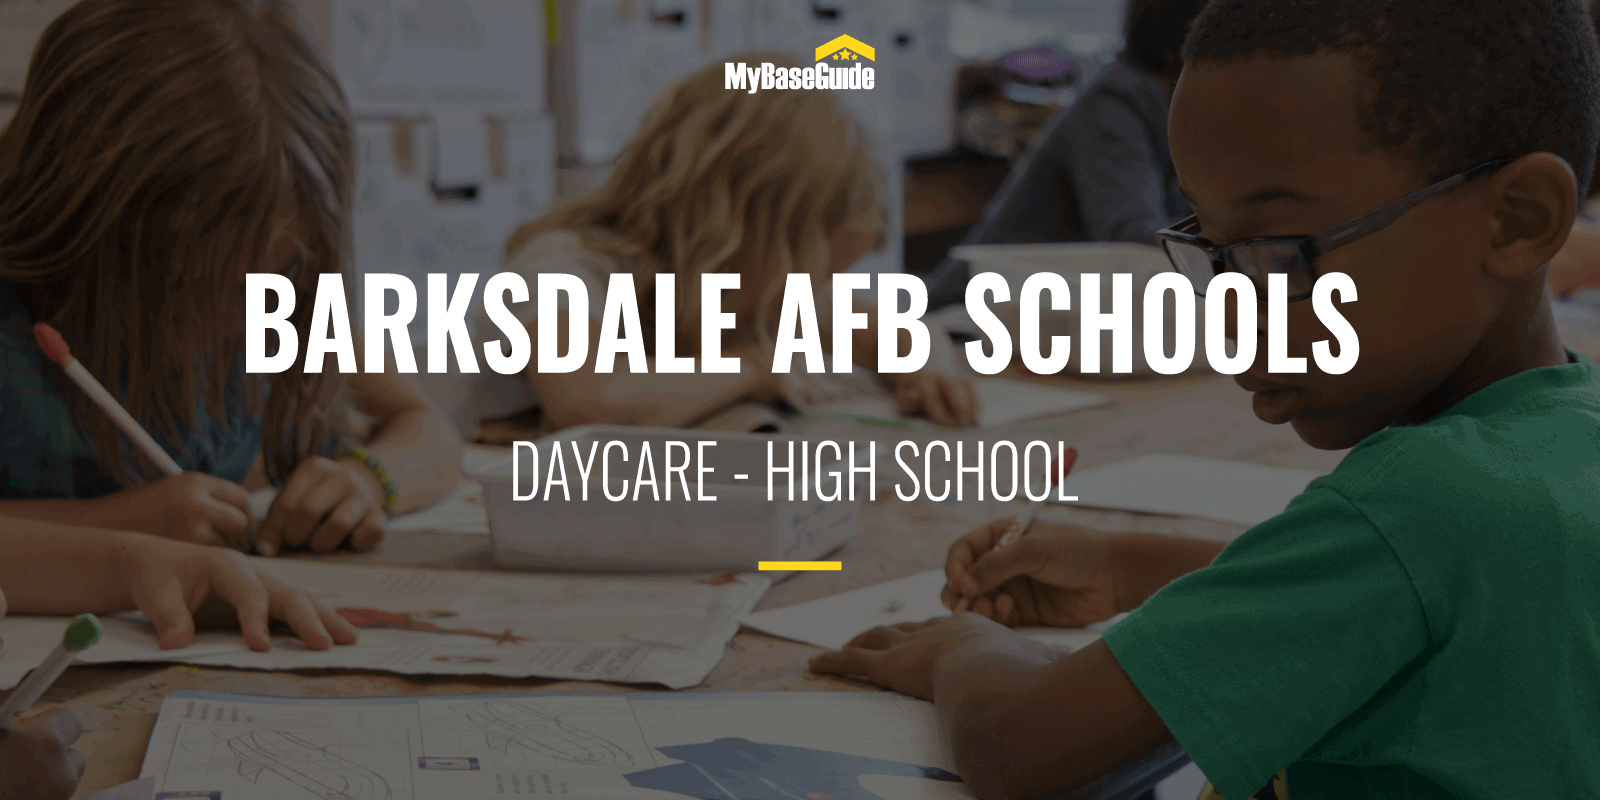 Barksdale AFB Schools: Daycare - High School